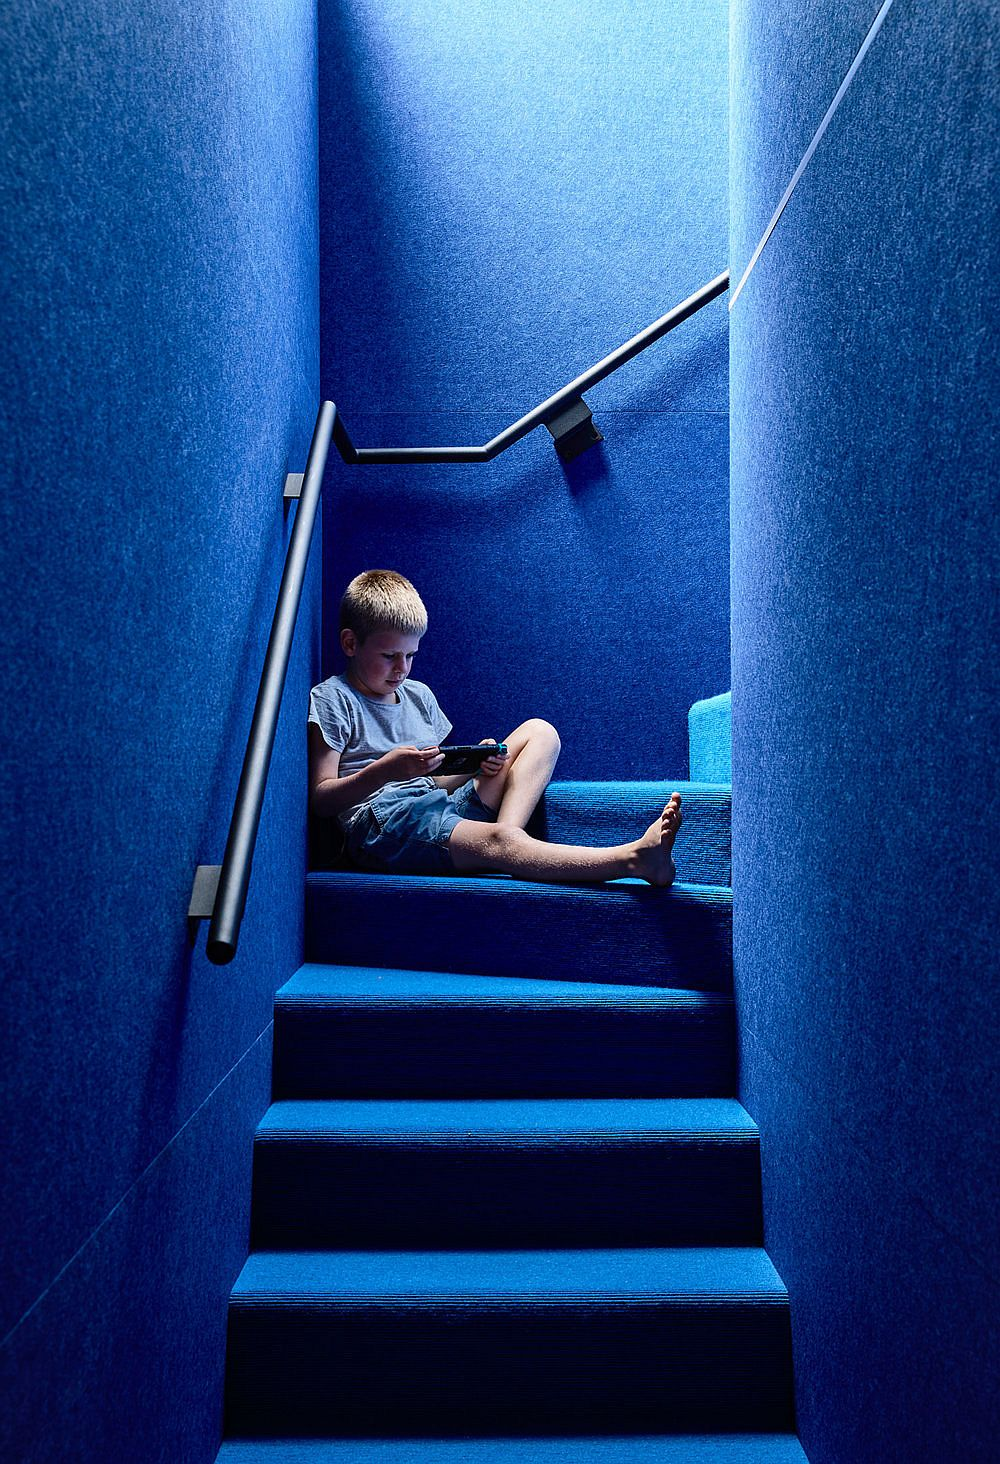 Light-well-illuminates-the-blue-stairway-in-a-fabulous-manner-96059